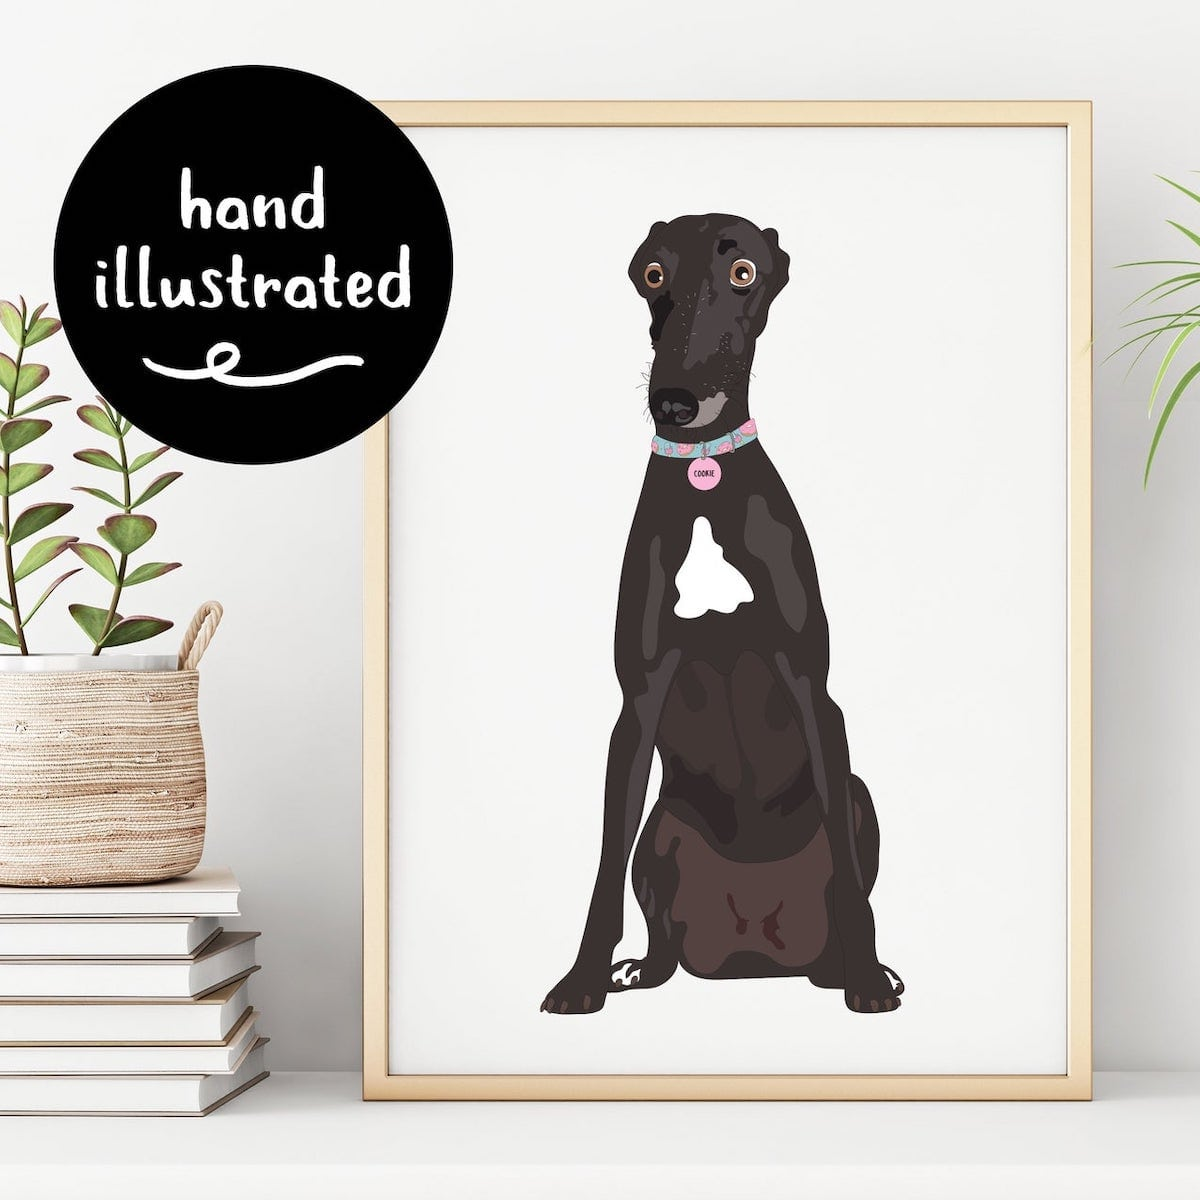 Etsy Gift Guide - Personalised Illustrated Pet Portrait Wall Art